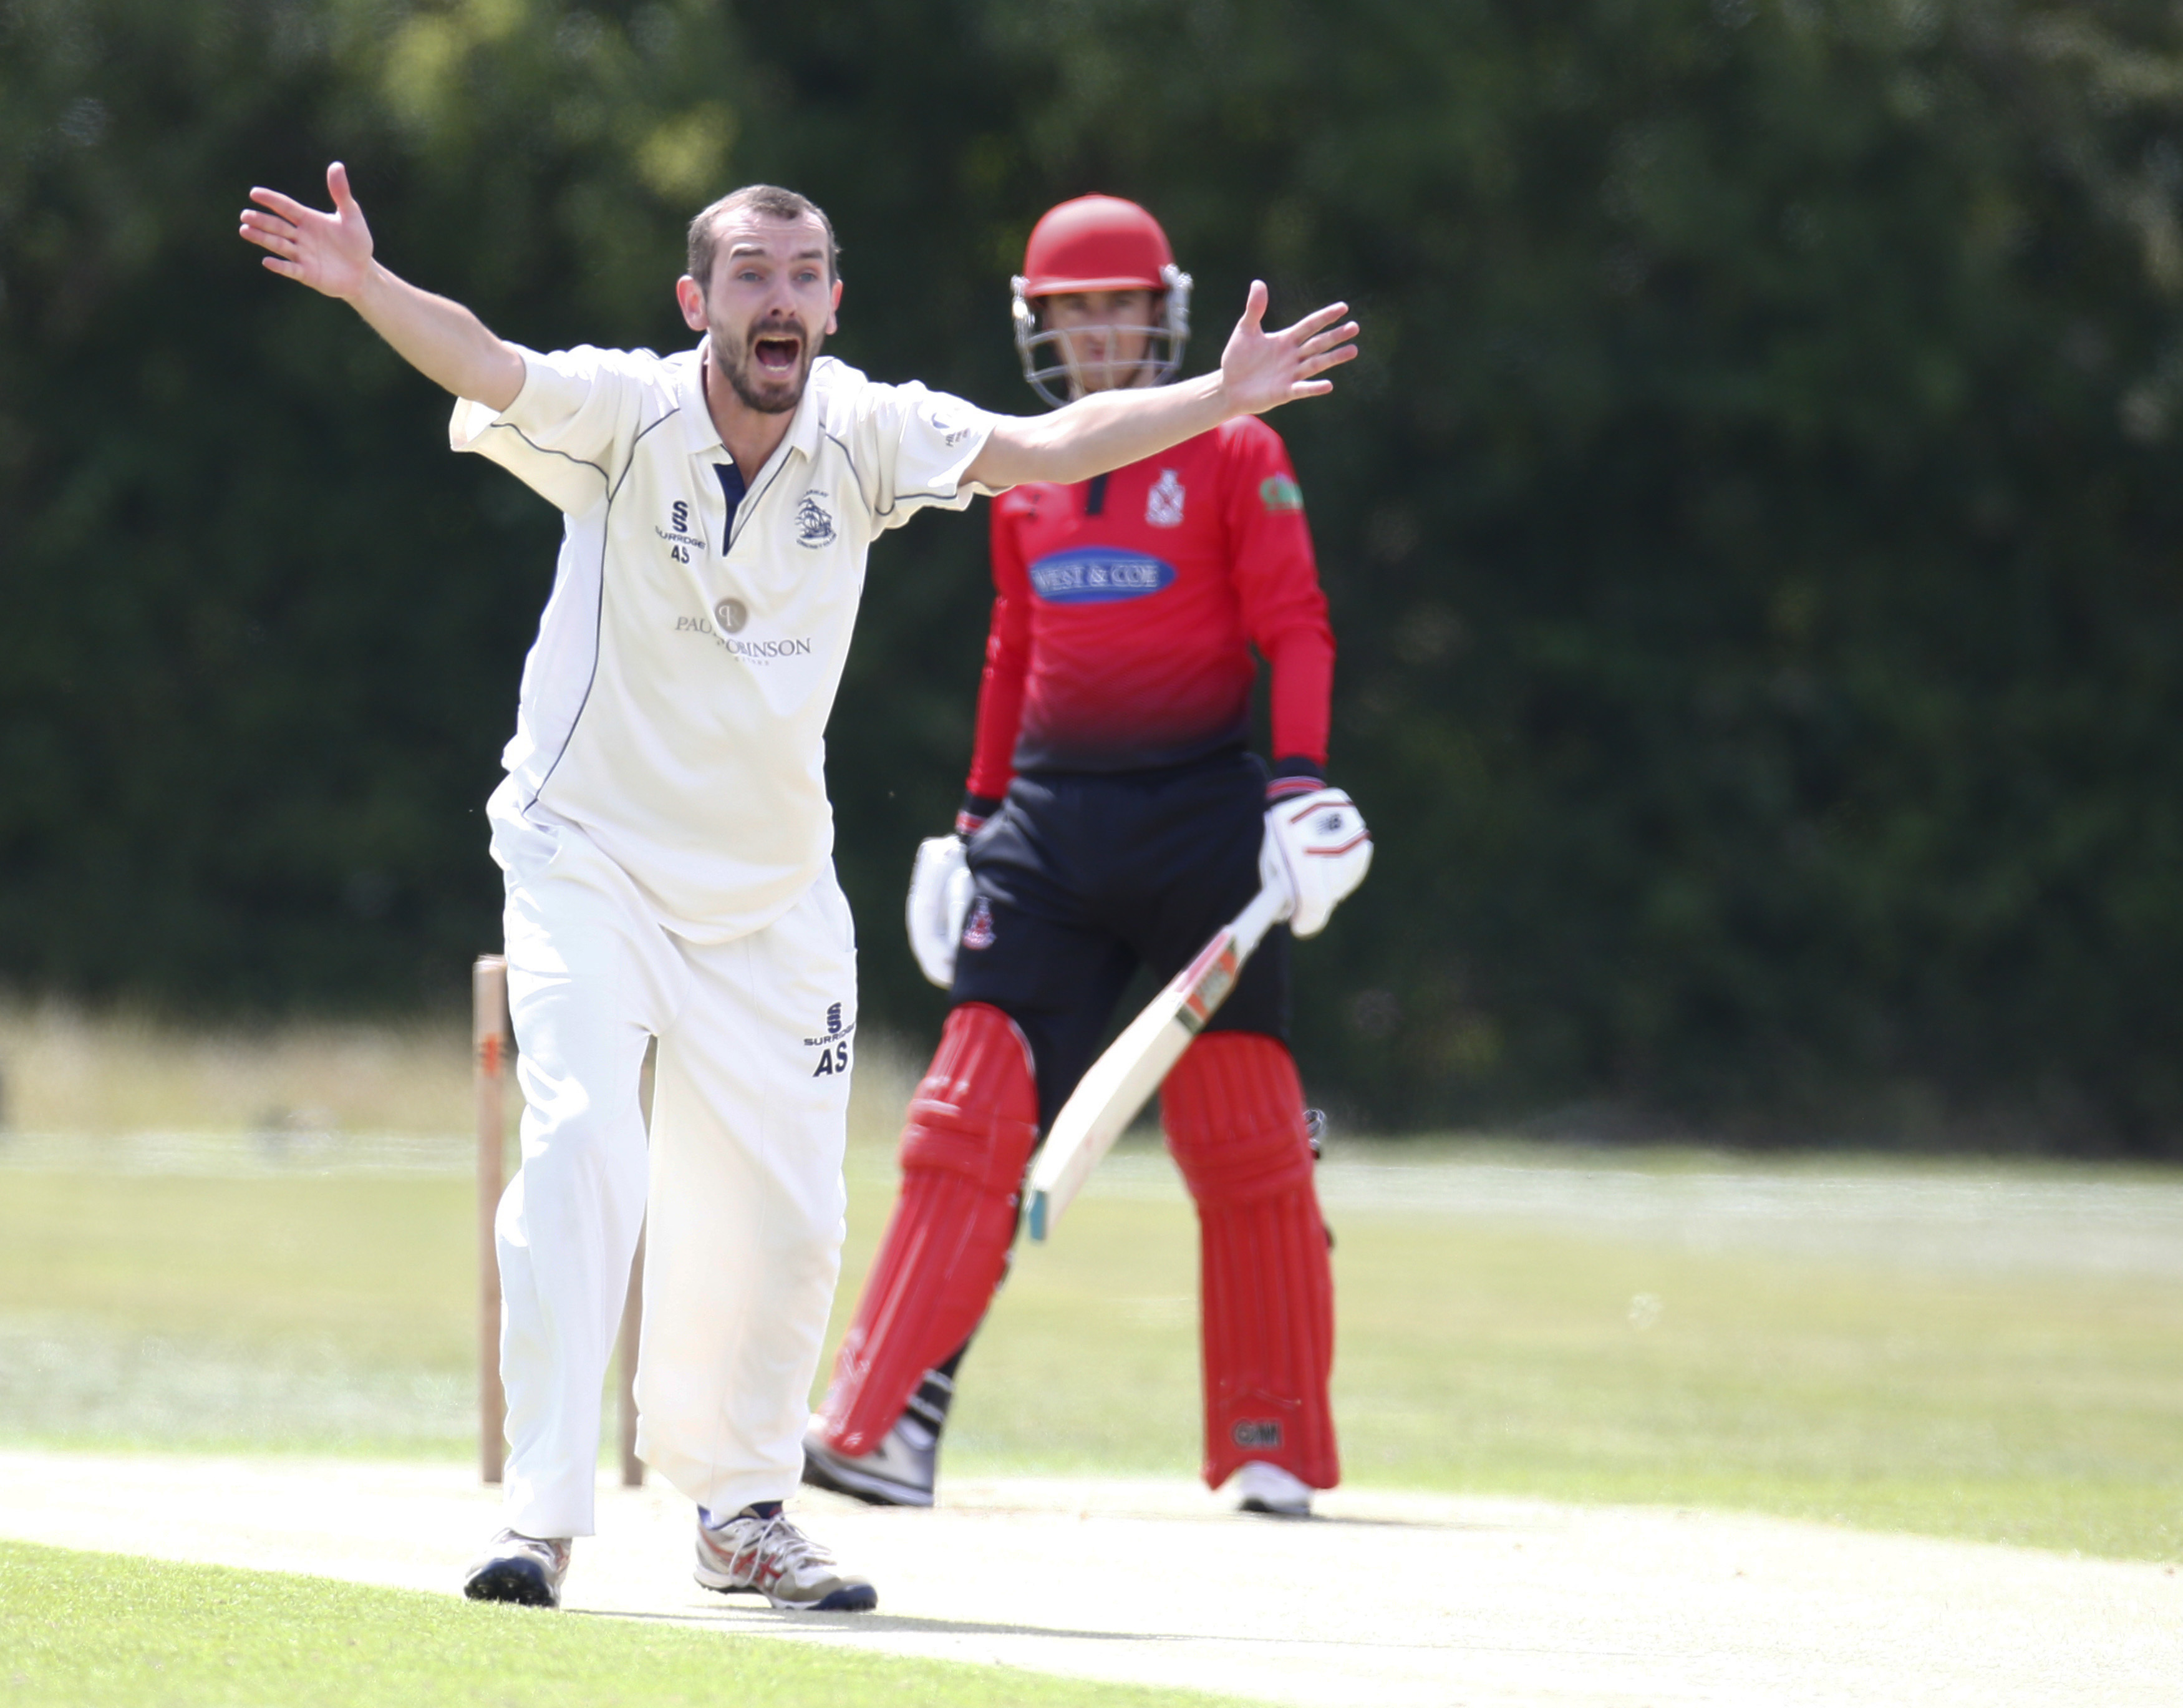 BILLERICAY, ENGLAND, JULY 18 2020: Andy Smith of Billericay CC claims LBW not given during Shepherd Neame Essex Cricket League Gooch Division between Billericay CC and Hornchurch CC at Toby Howe Cricket Club, Billericay, England, UK on July 18, 2020.(ESPA/Cal Sport Media/Sipa USA)